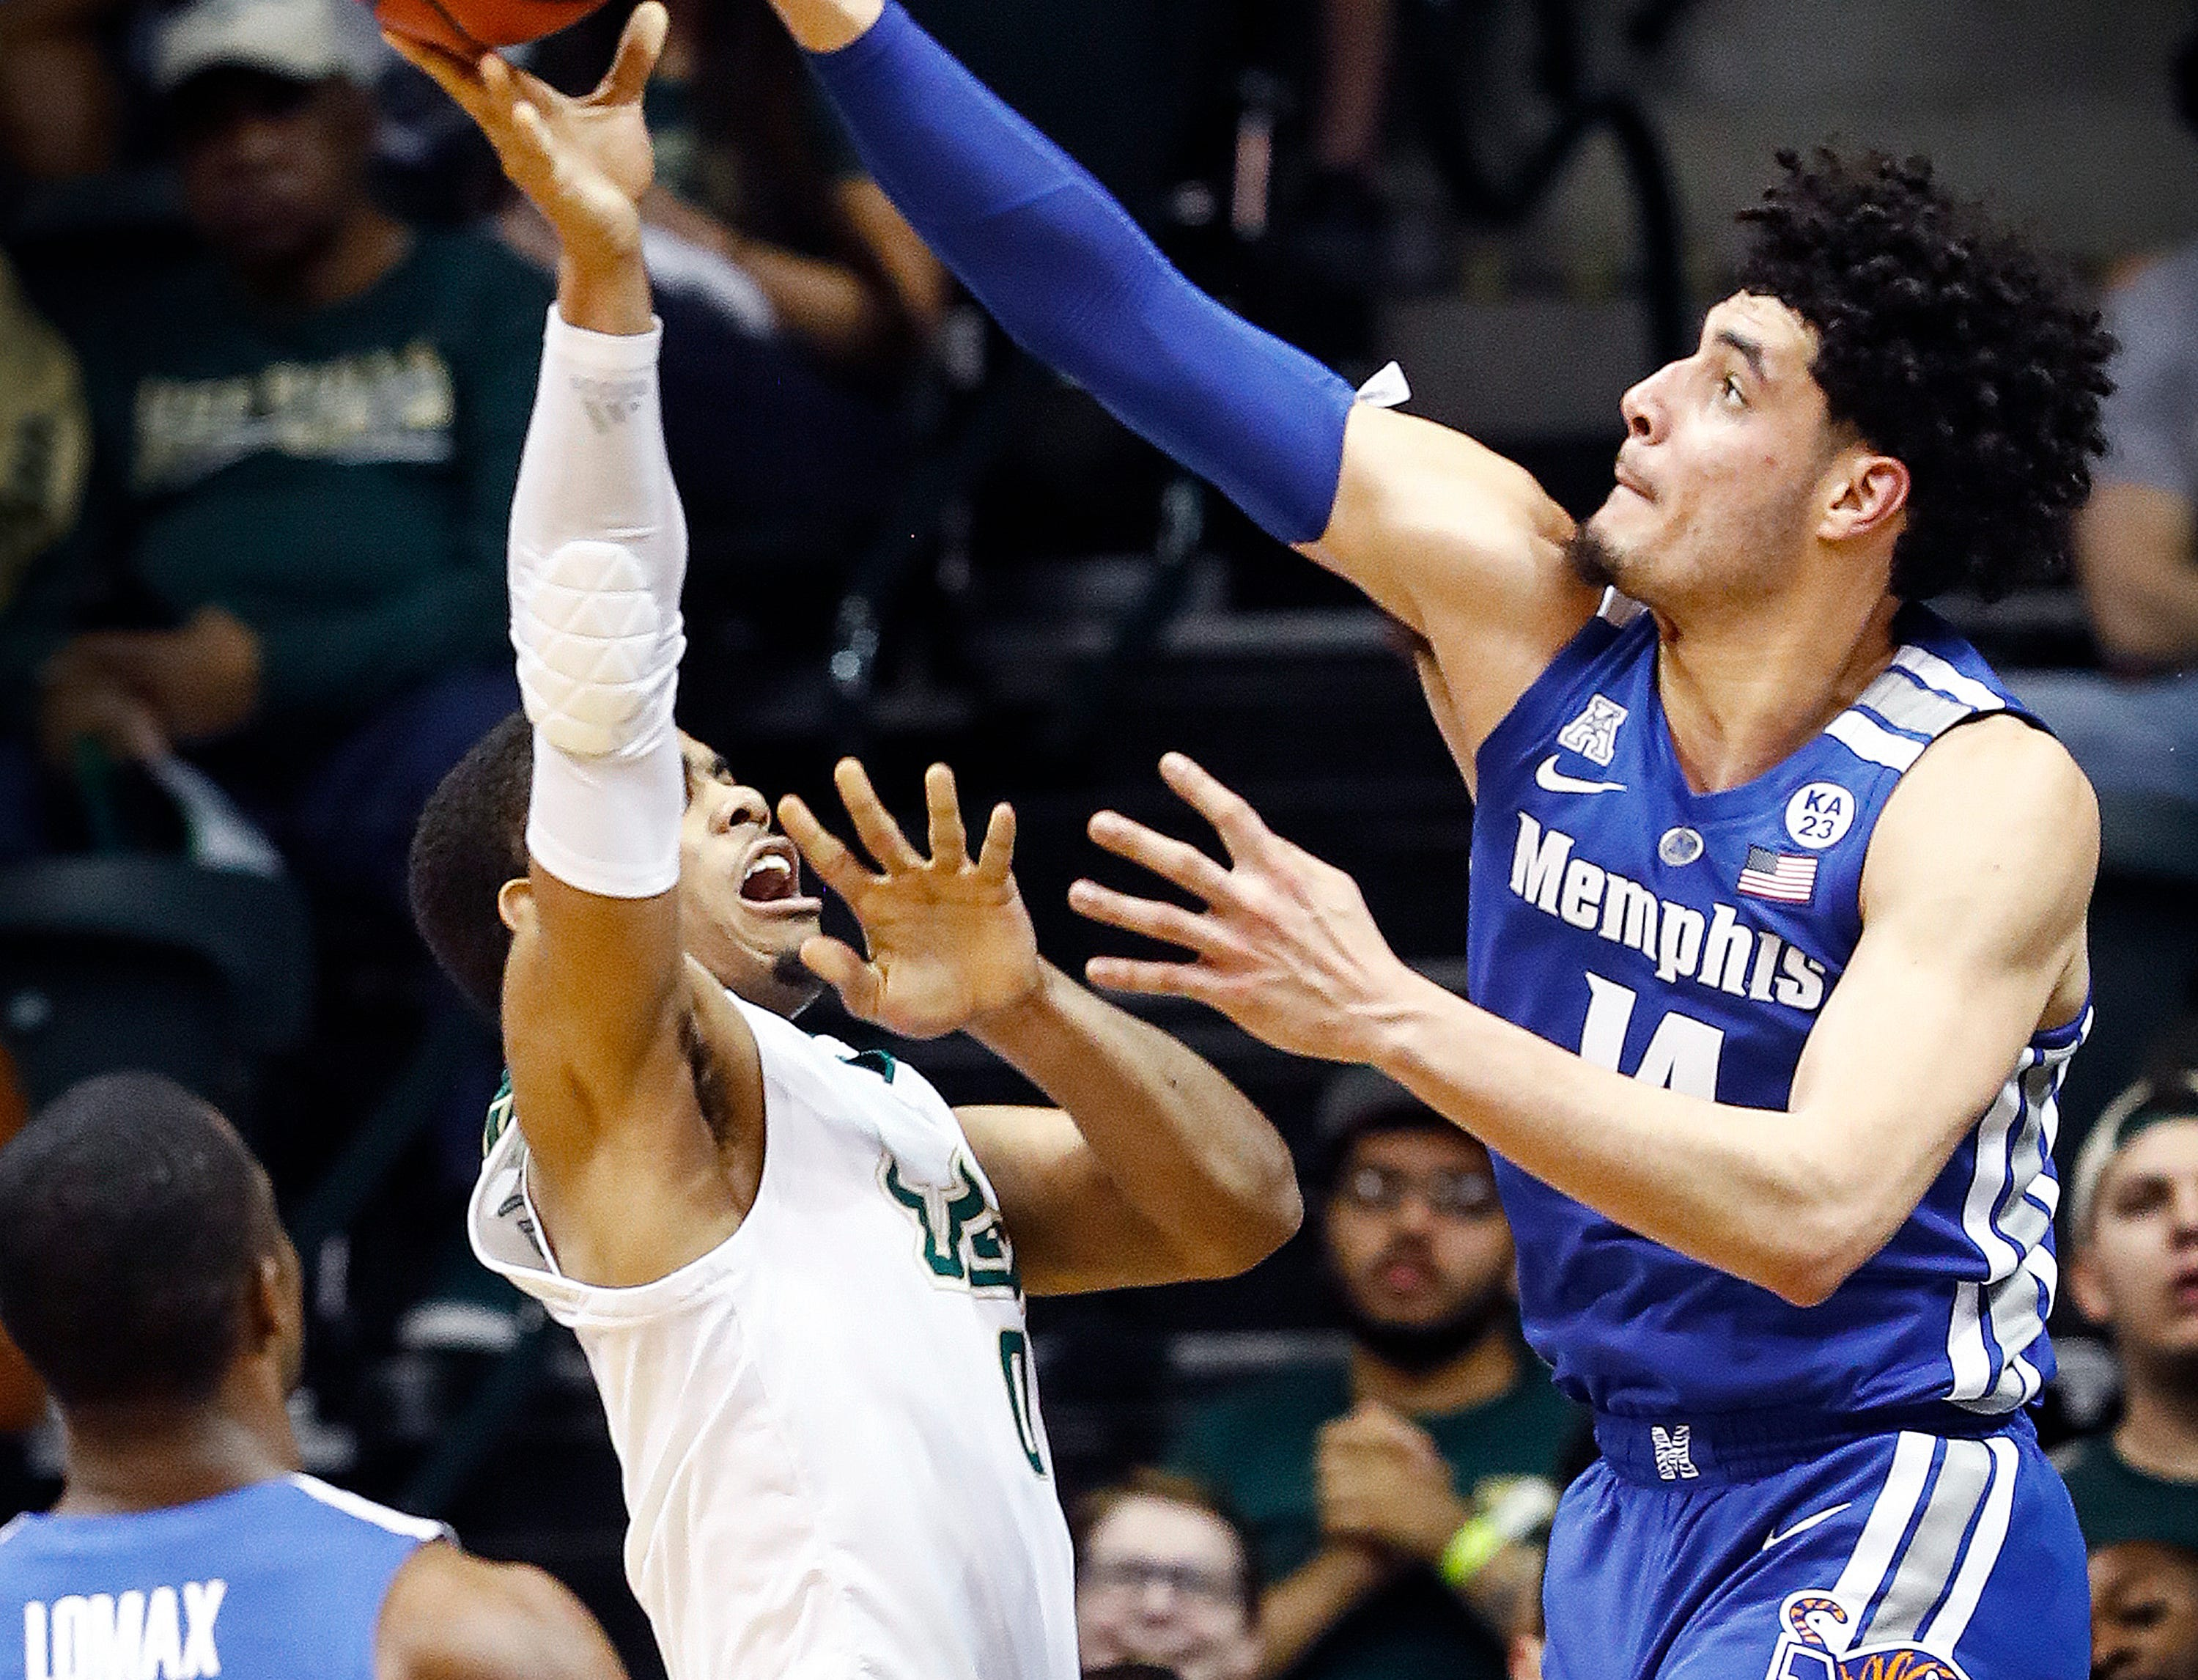 Memphis defender Isaiah Maurice (right) blocks the shot of USF guard David Collins (left) during action in Tampa, Saturday, February 2, 2019.